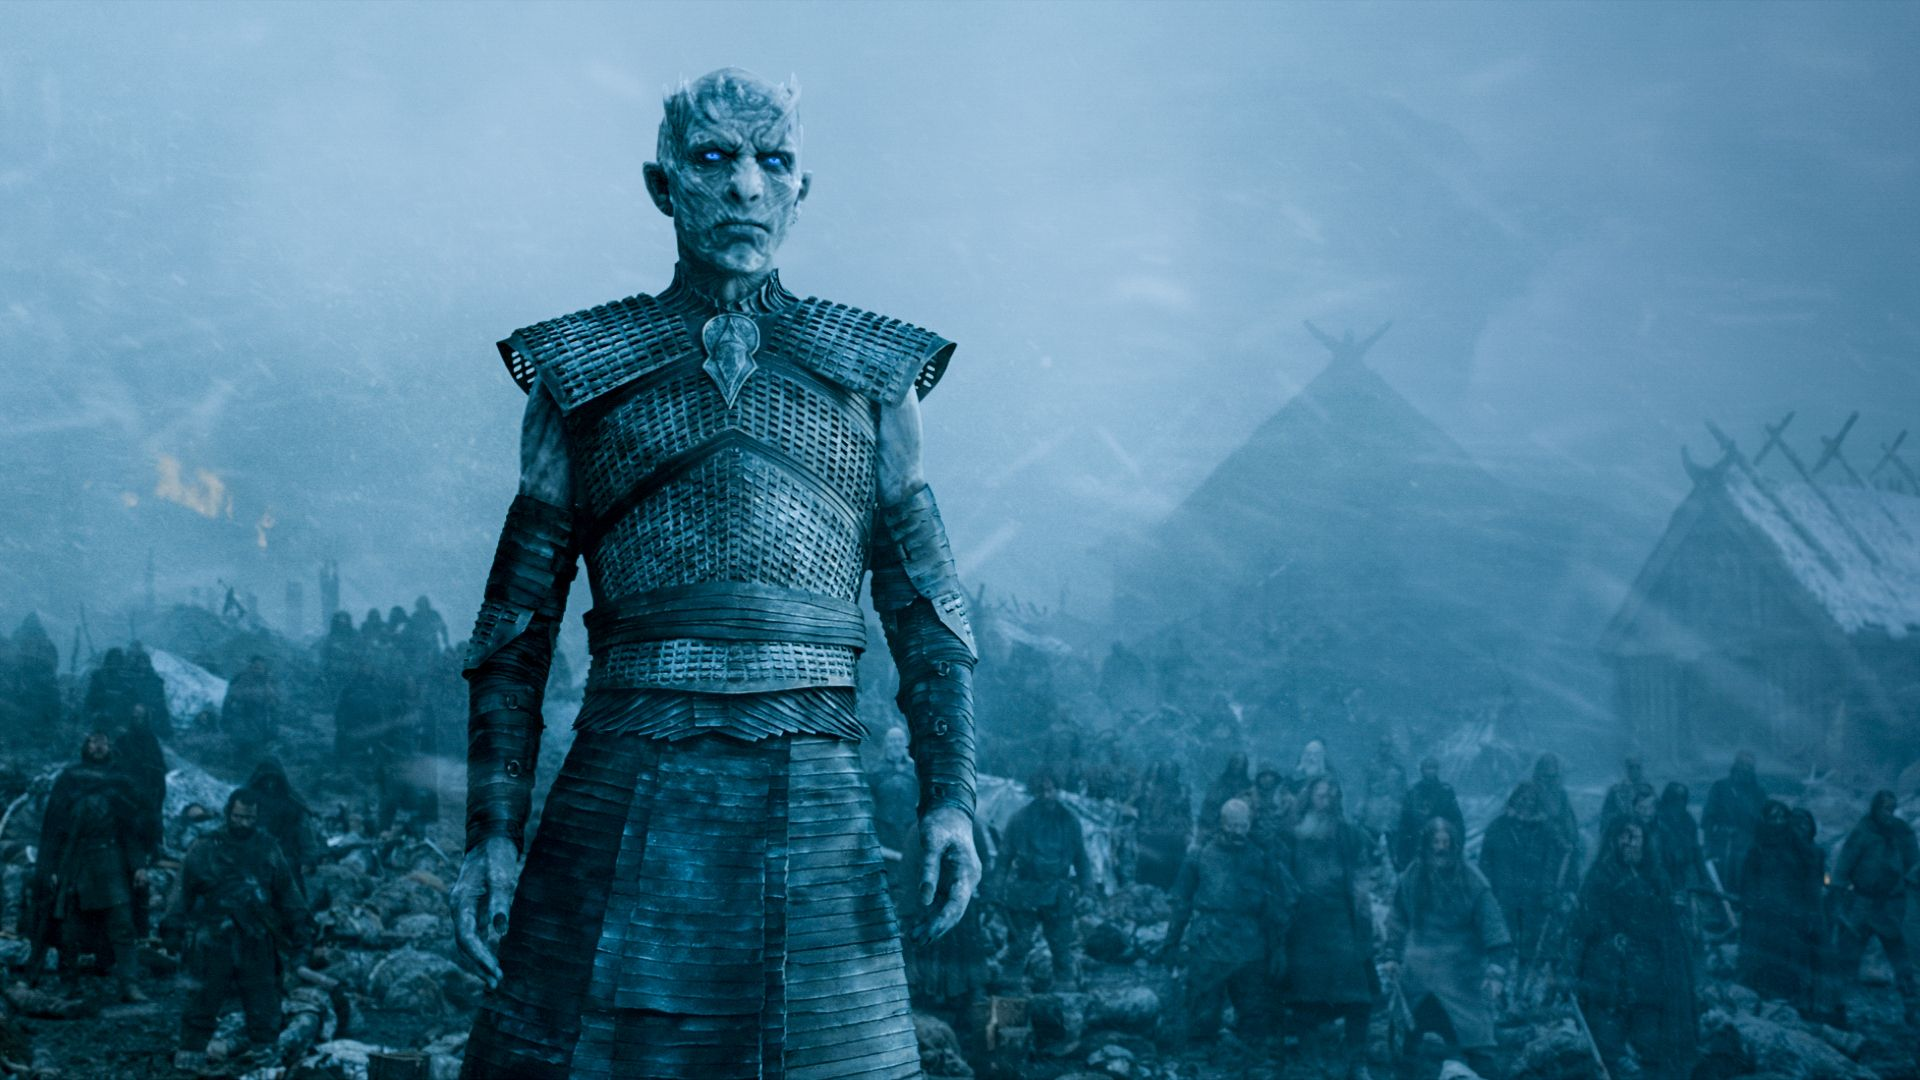 Game Of Thrones Are The White Walkers A Problem For Hbo S Hit Series